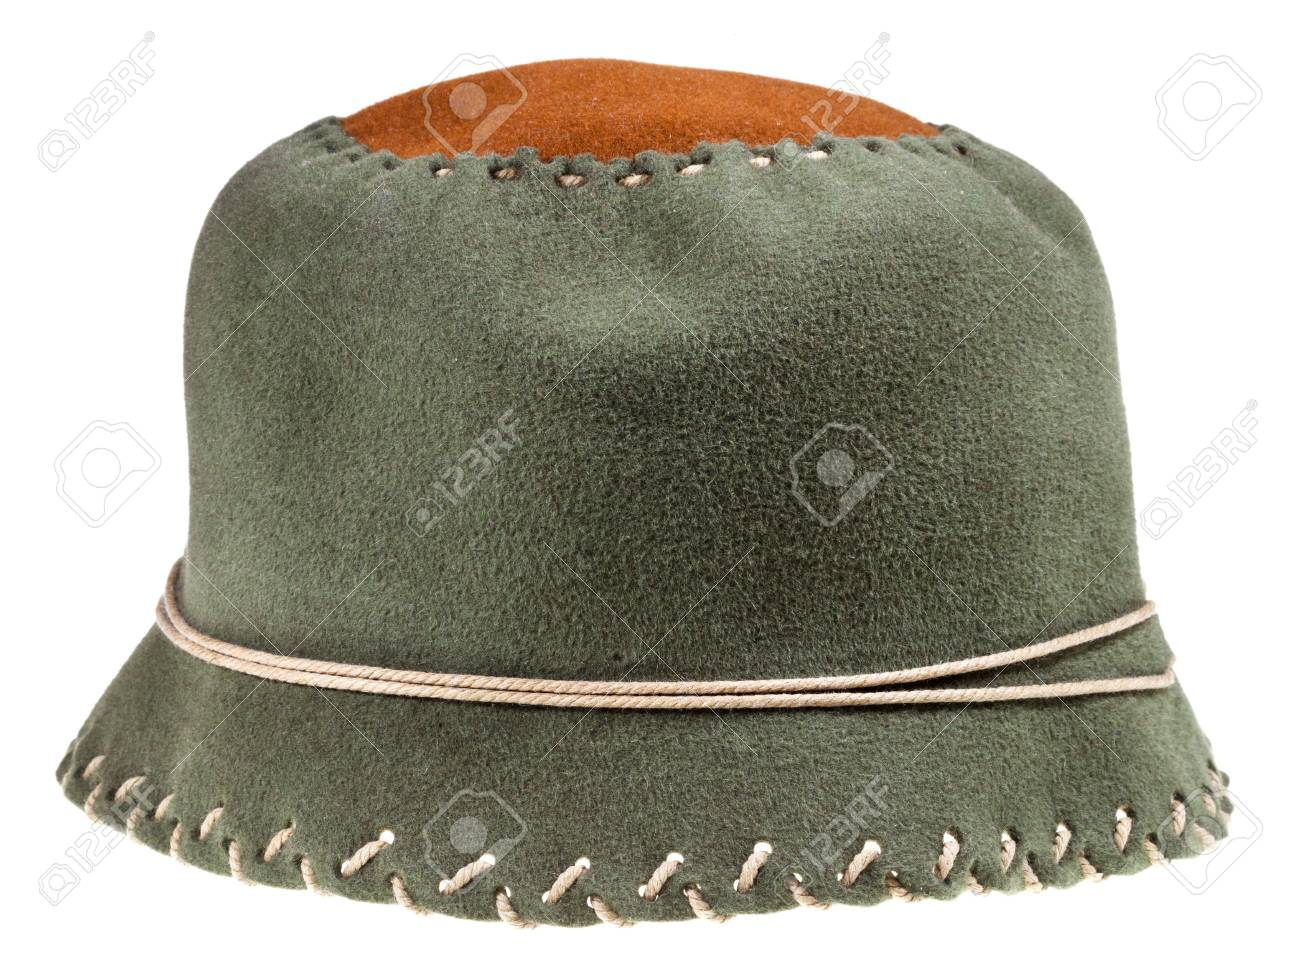 felt green soft cloche hat isolated on white background Stock Photo - 19418043